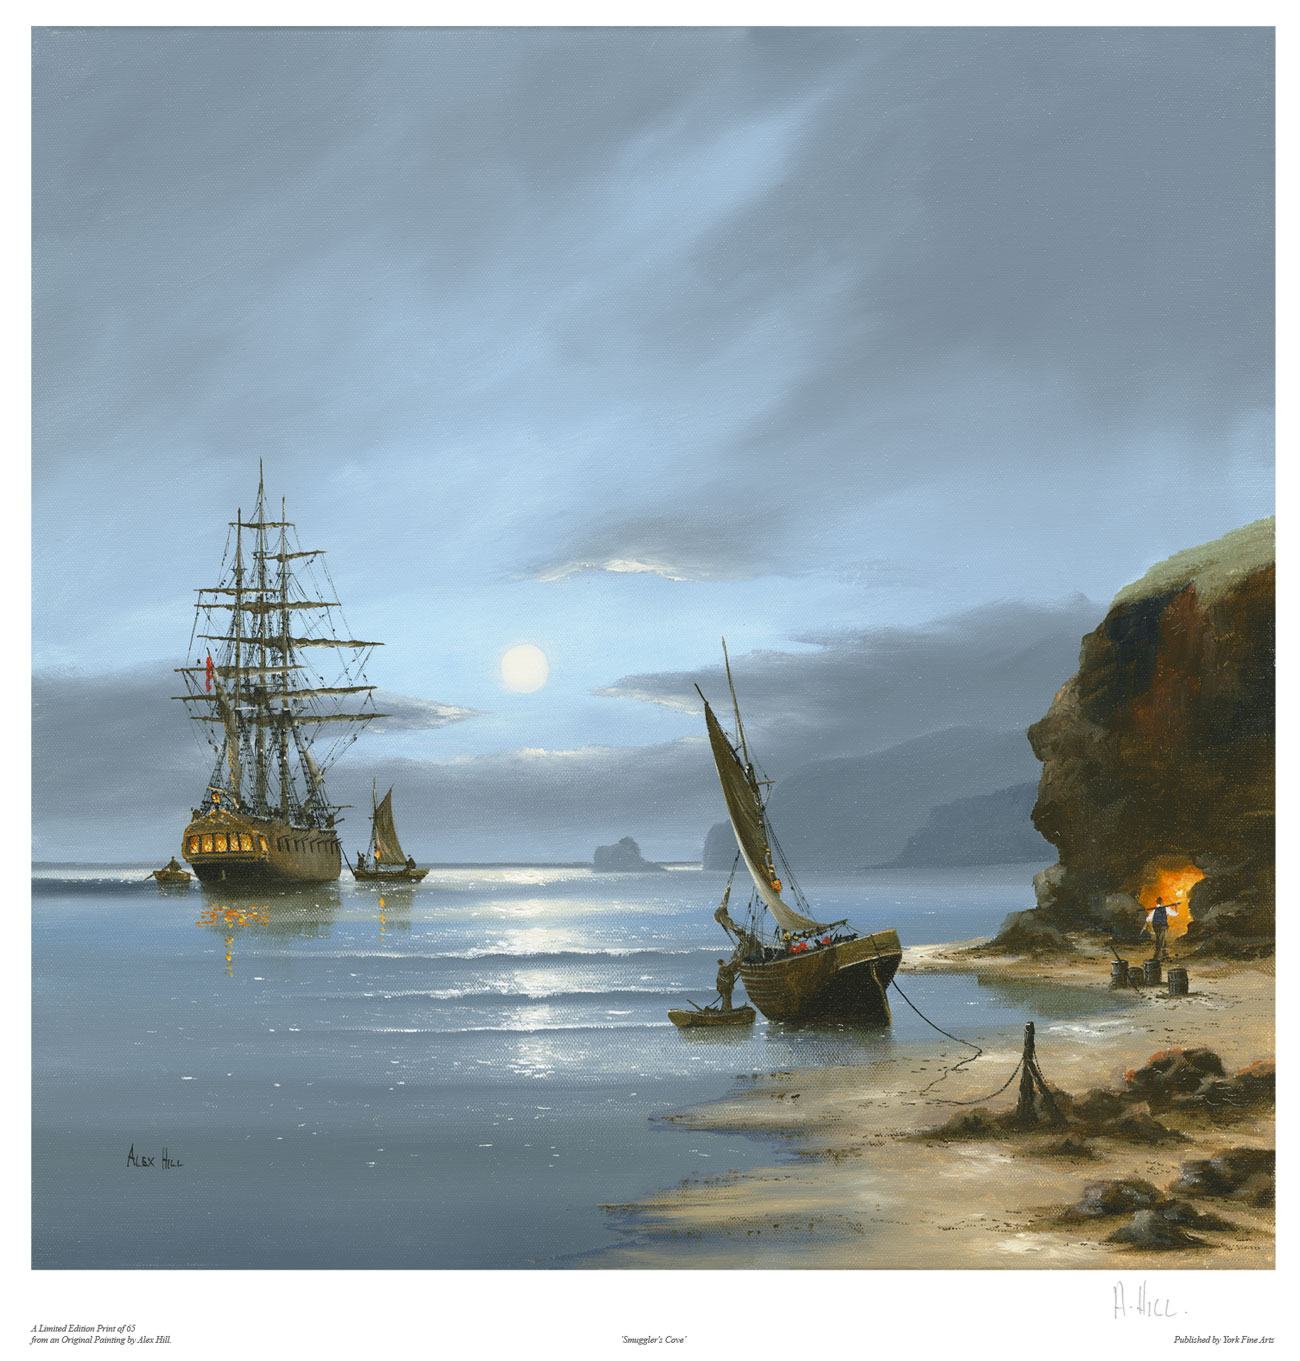 Alex Hill, Signed limited edition print, Smuggler's Cove Click to enlarge